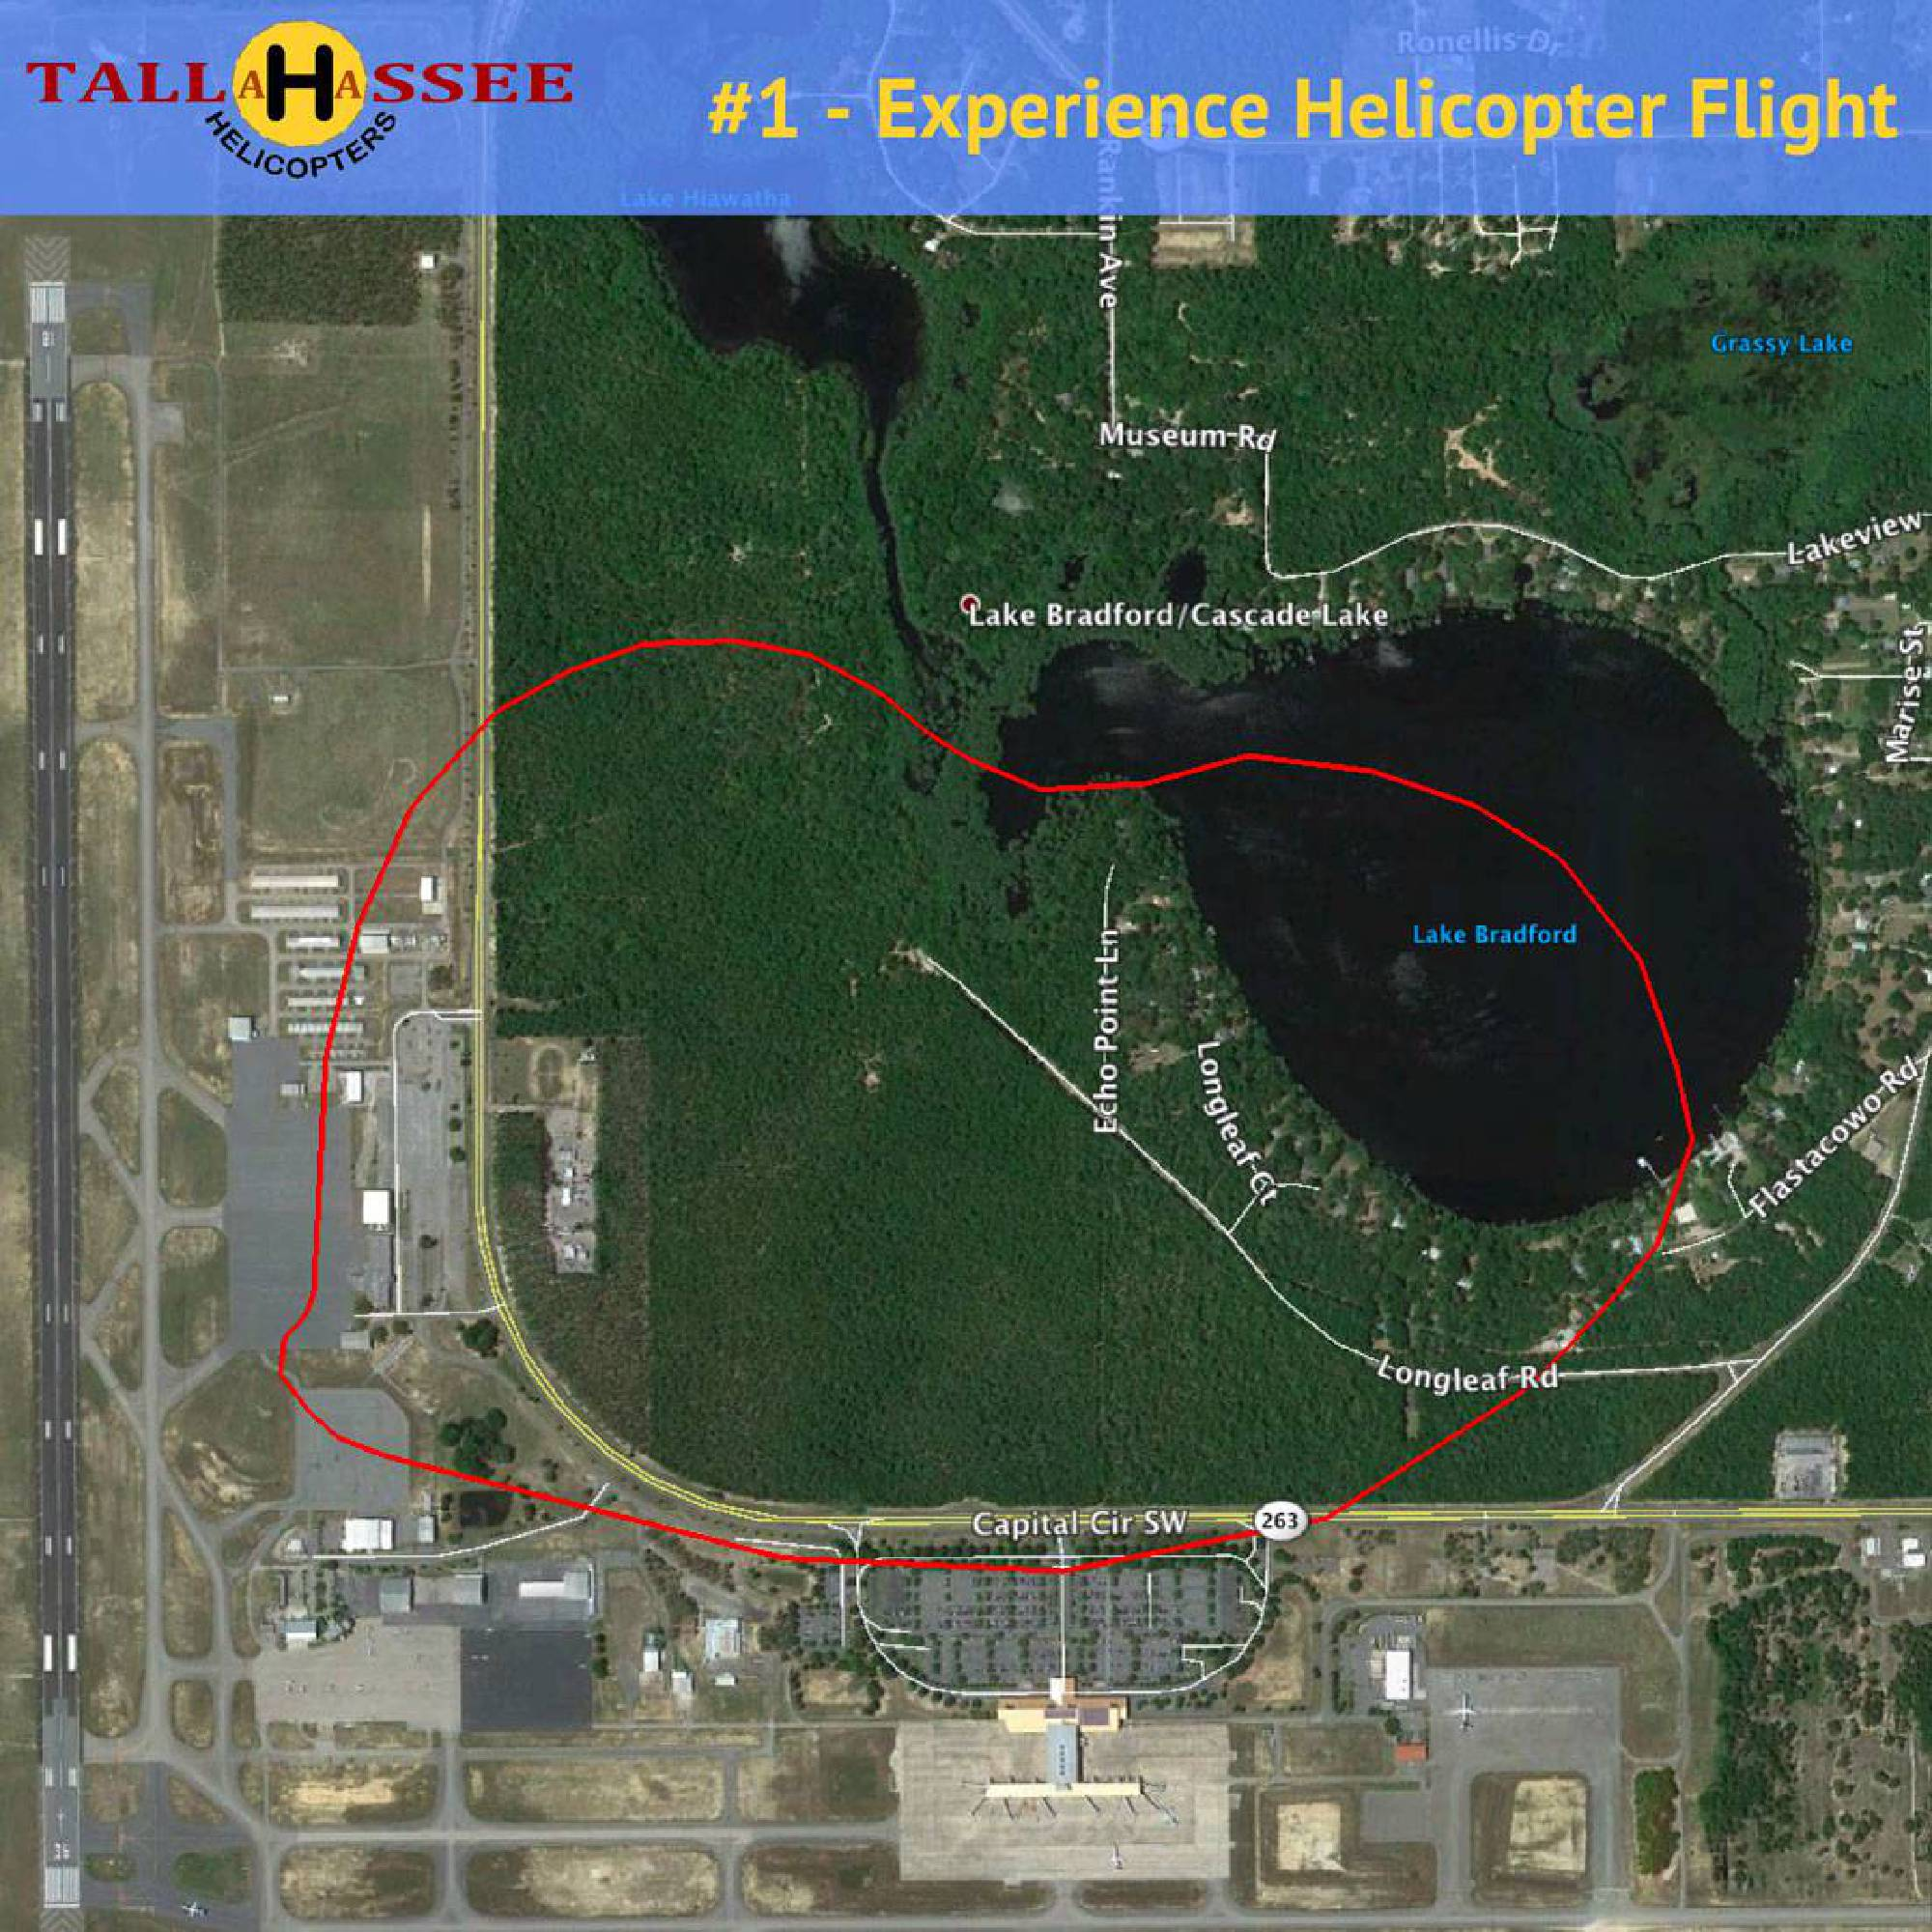 Tallahassee Experience Helicopter Flight